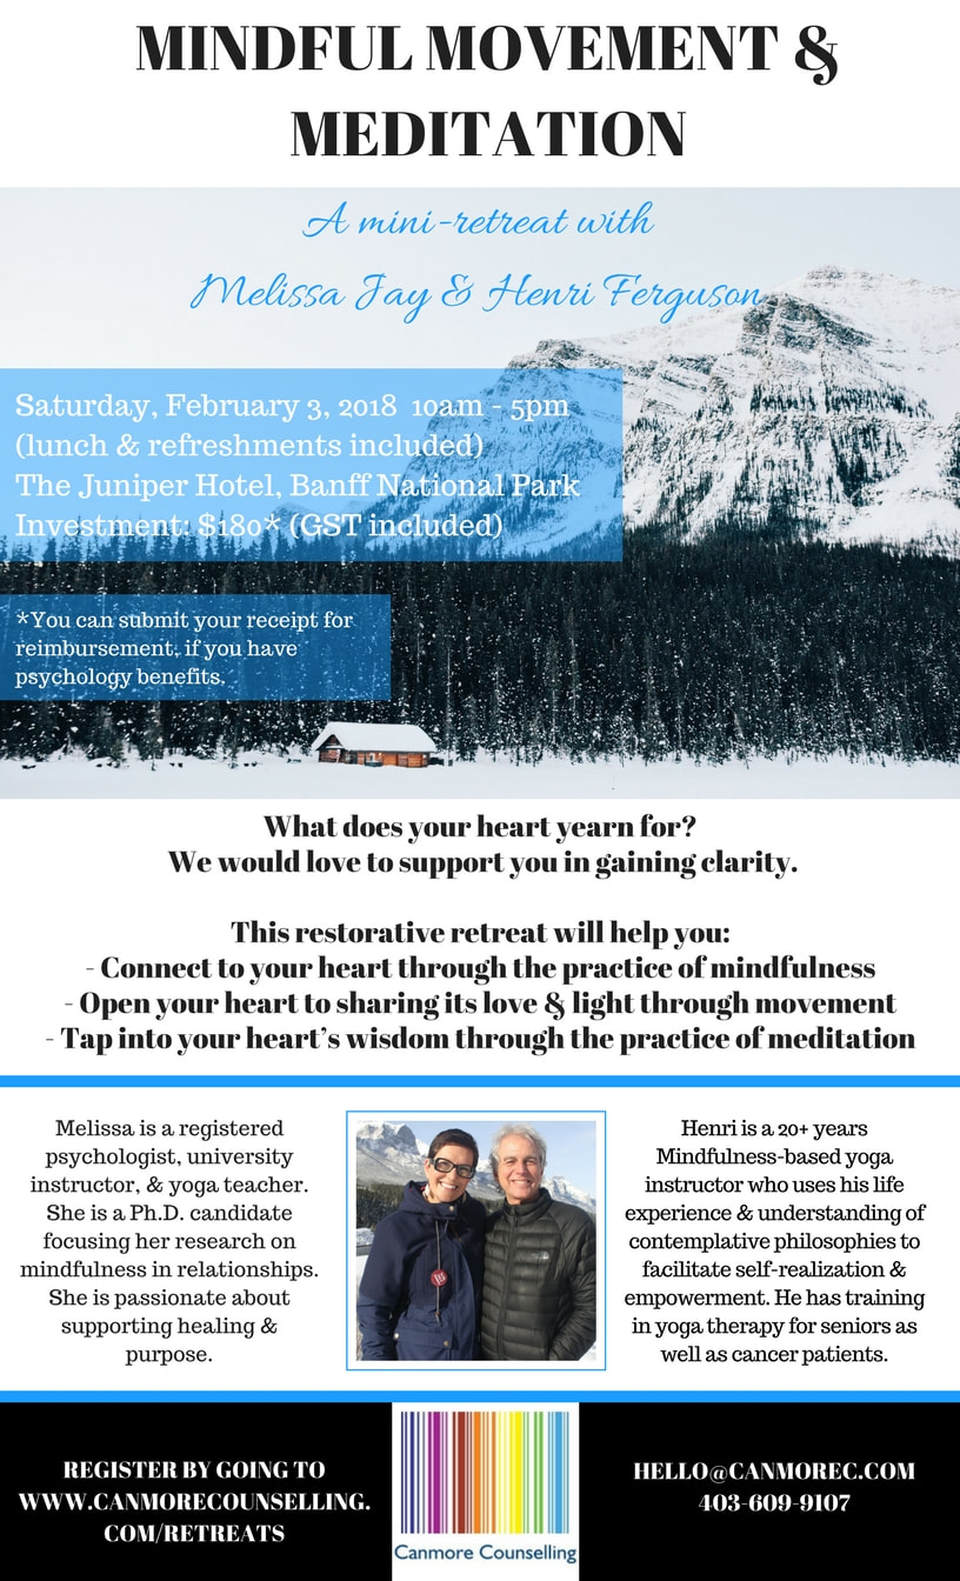 Mindful Movement and Meditation Retreat